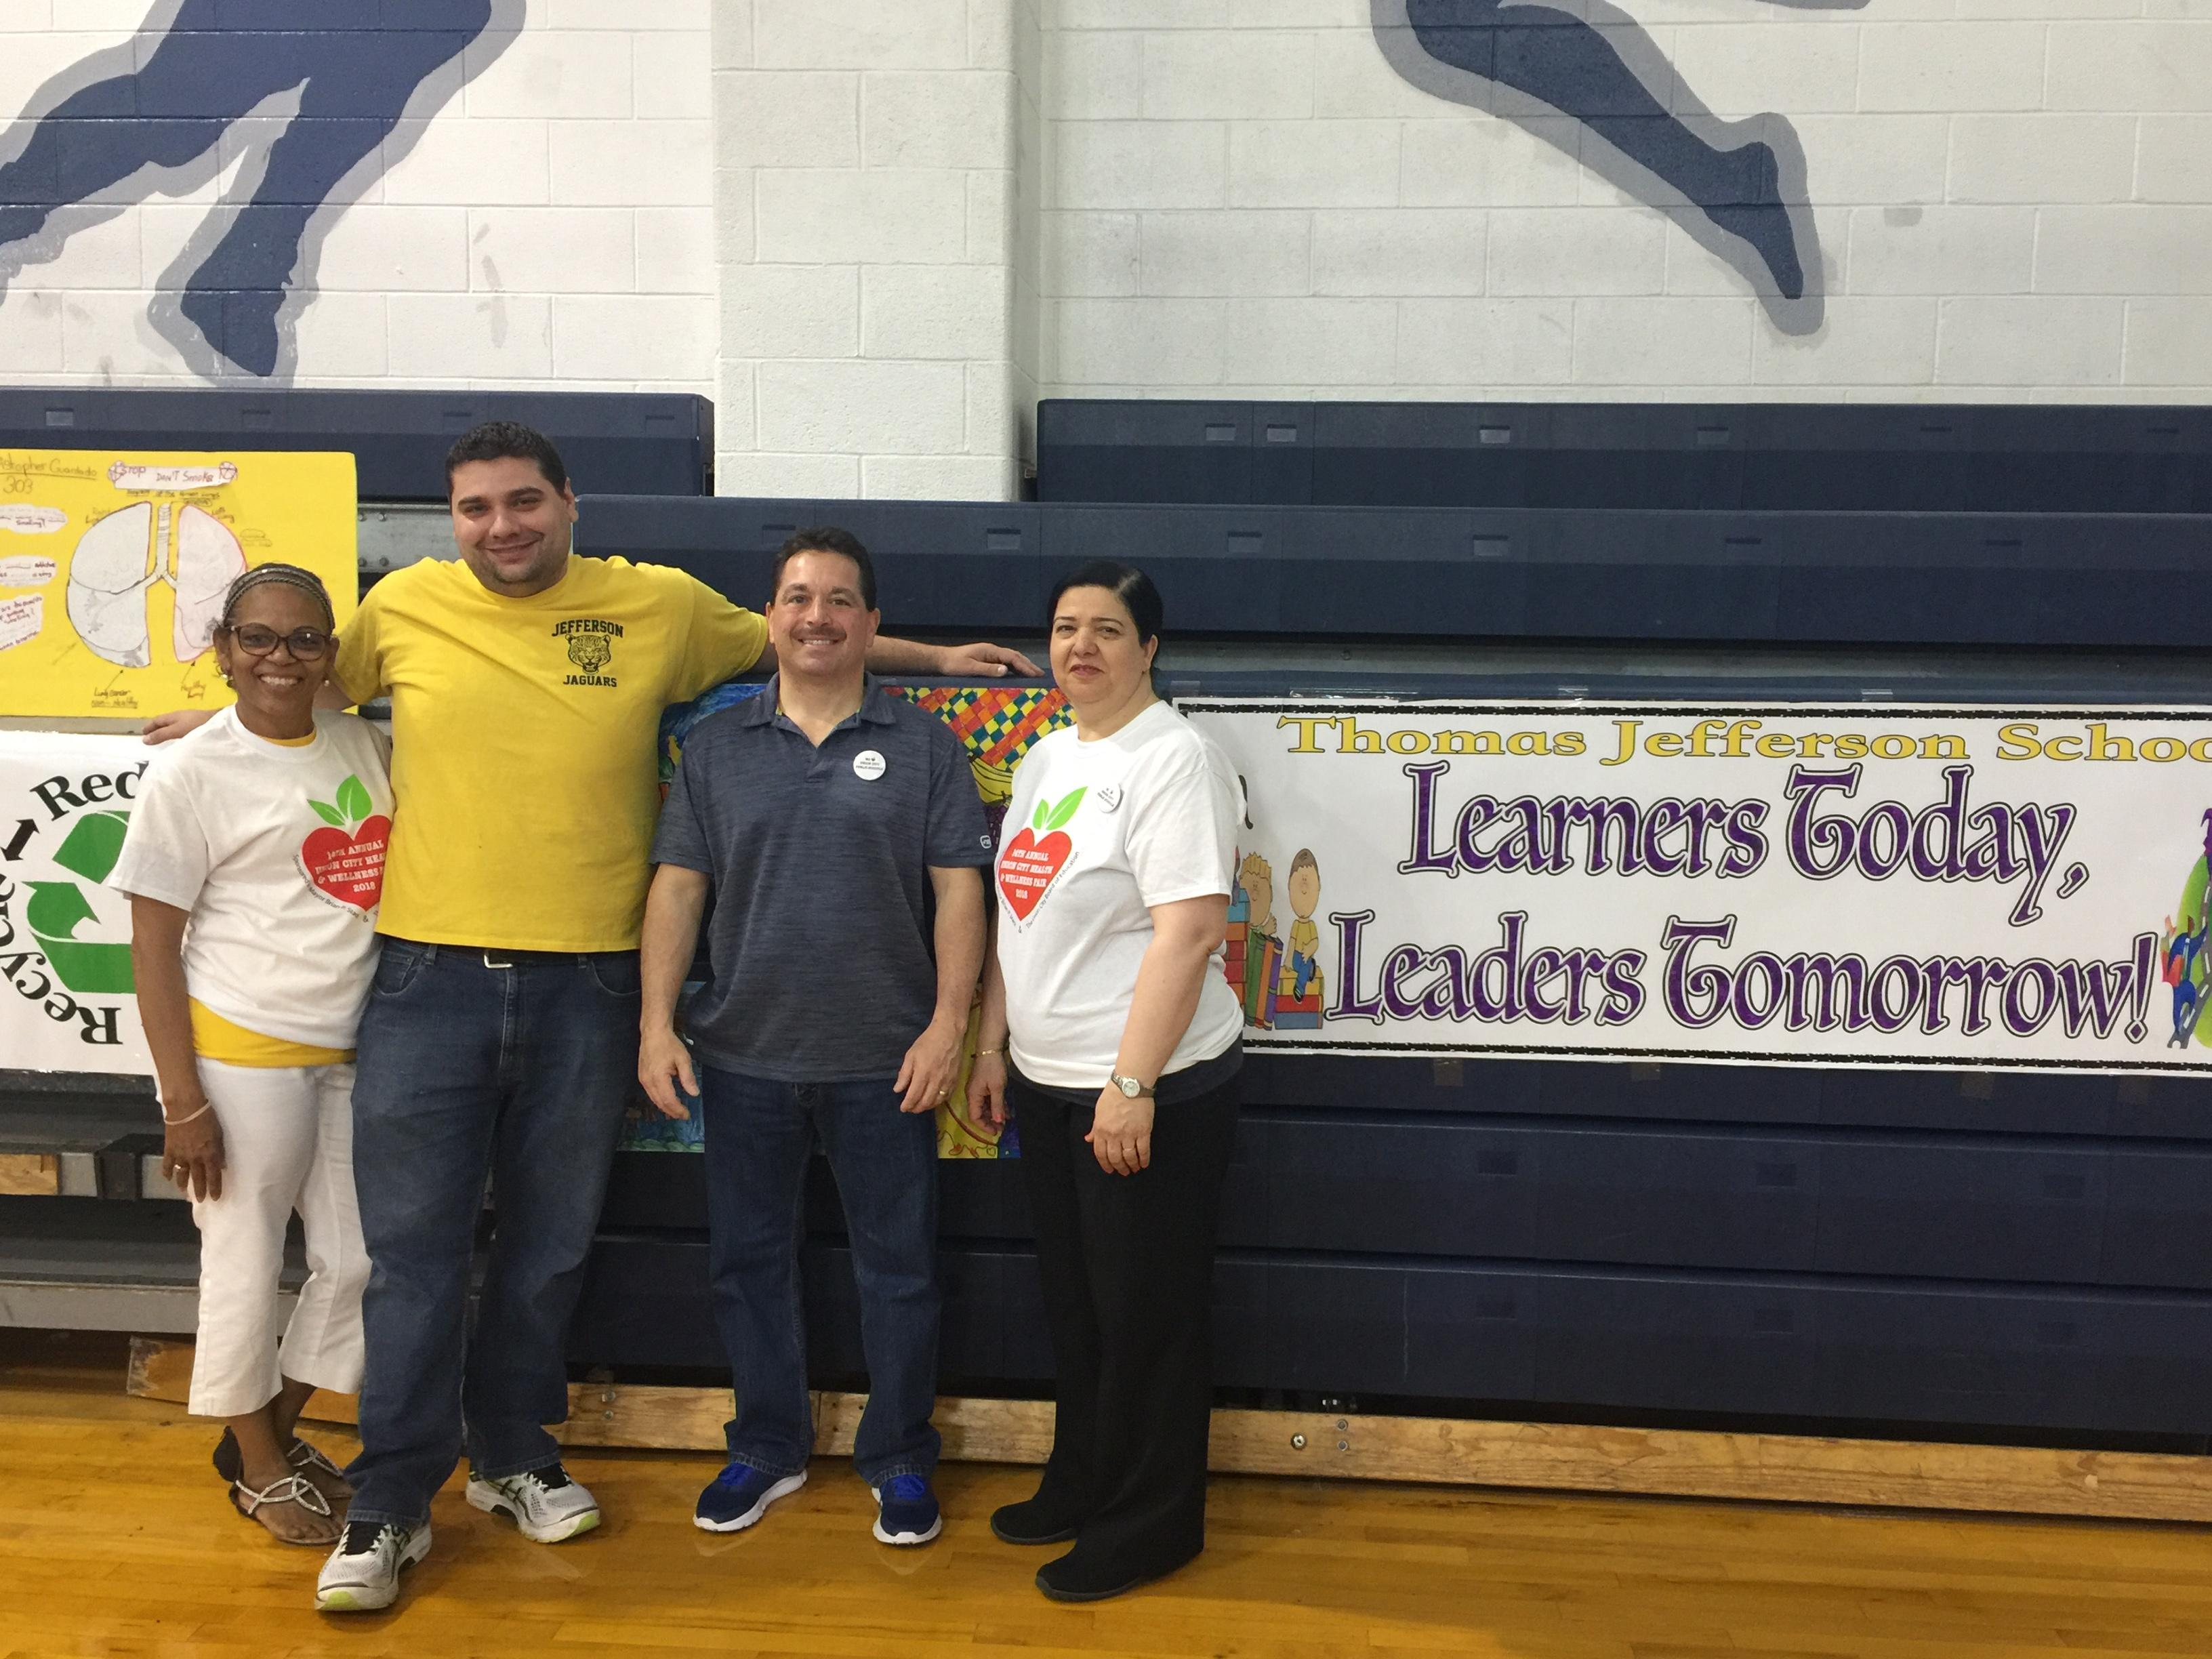 ms. fransisco, mr. petrovich, mr. celebrano, ms. michael